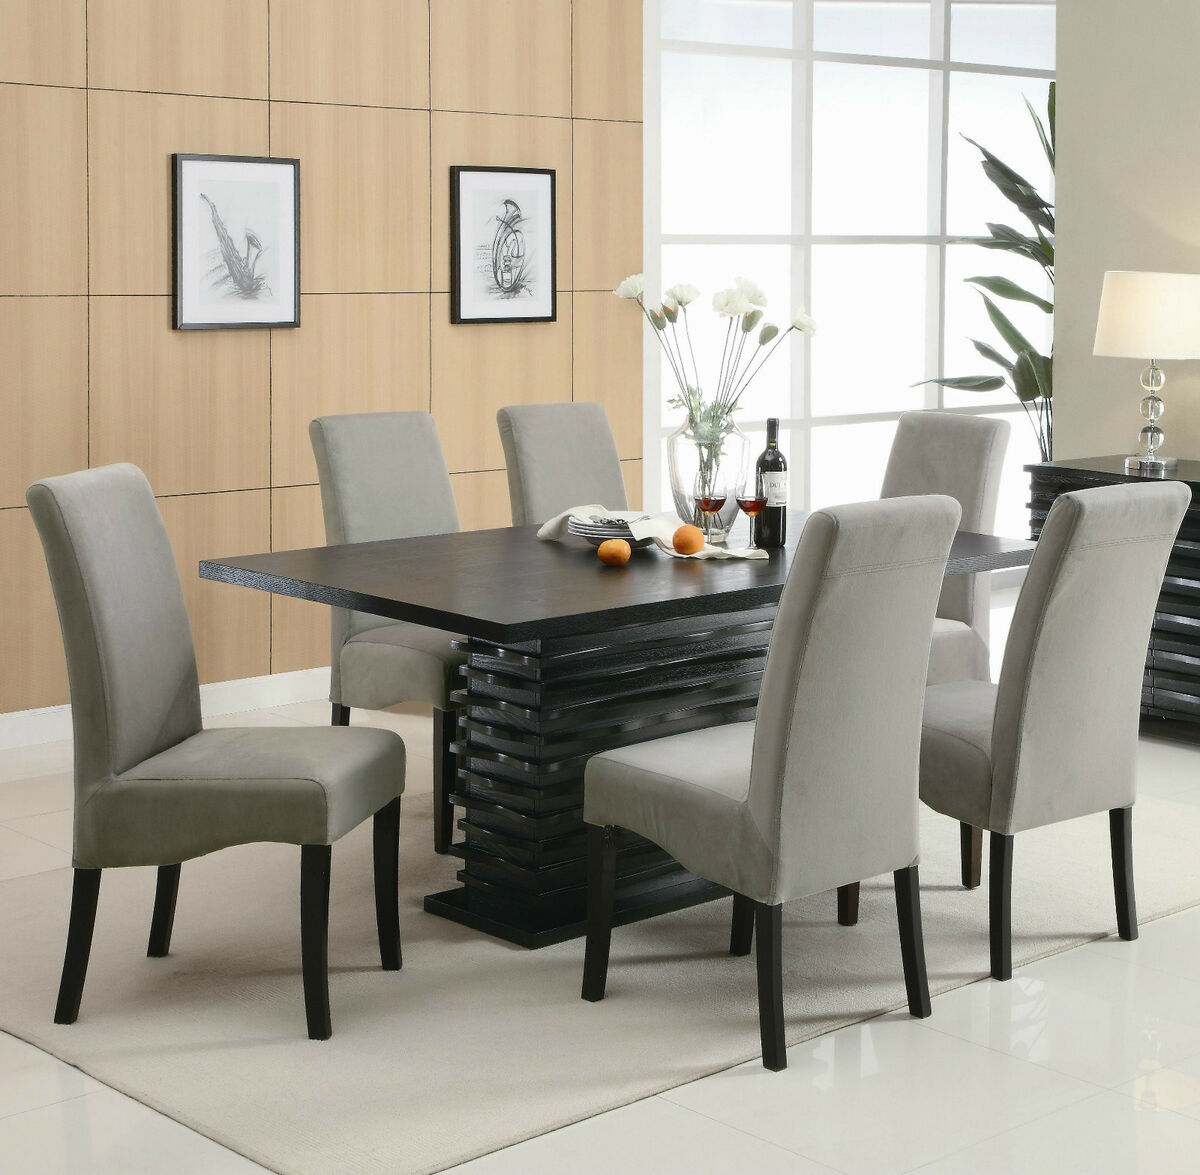 Impressive Contemporary Dining Table Sets 1200 x 1175 · 161 kB · jpeg